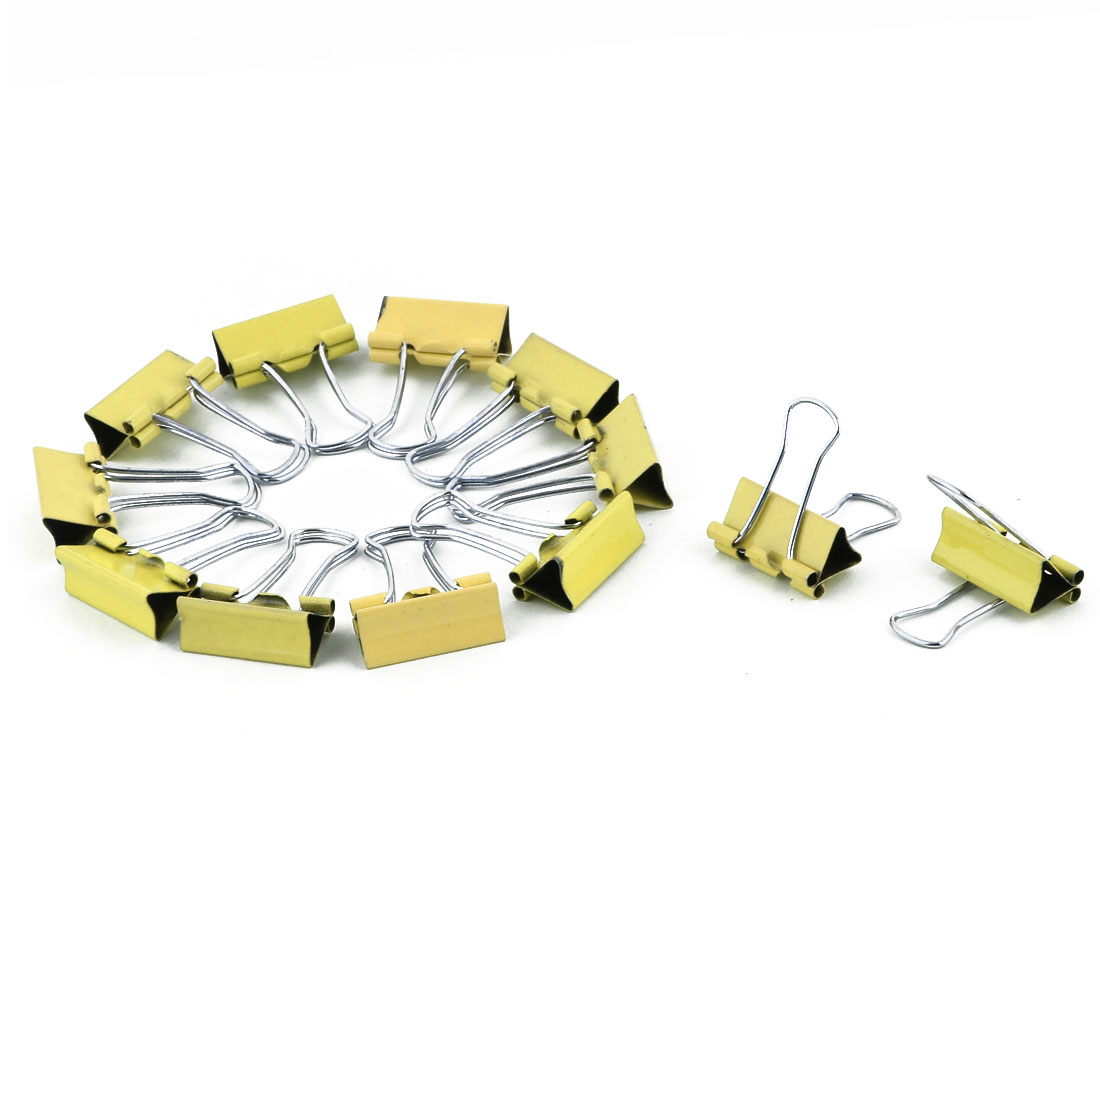 Office Metal Bill Ticket File Paper Organized Binder Clips Clamps Yellow 12 PCS